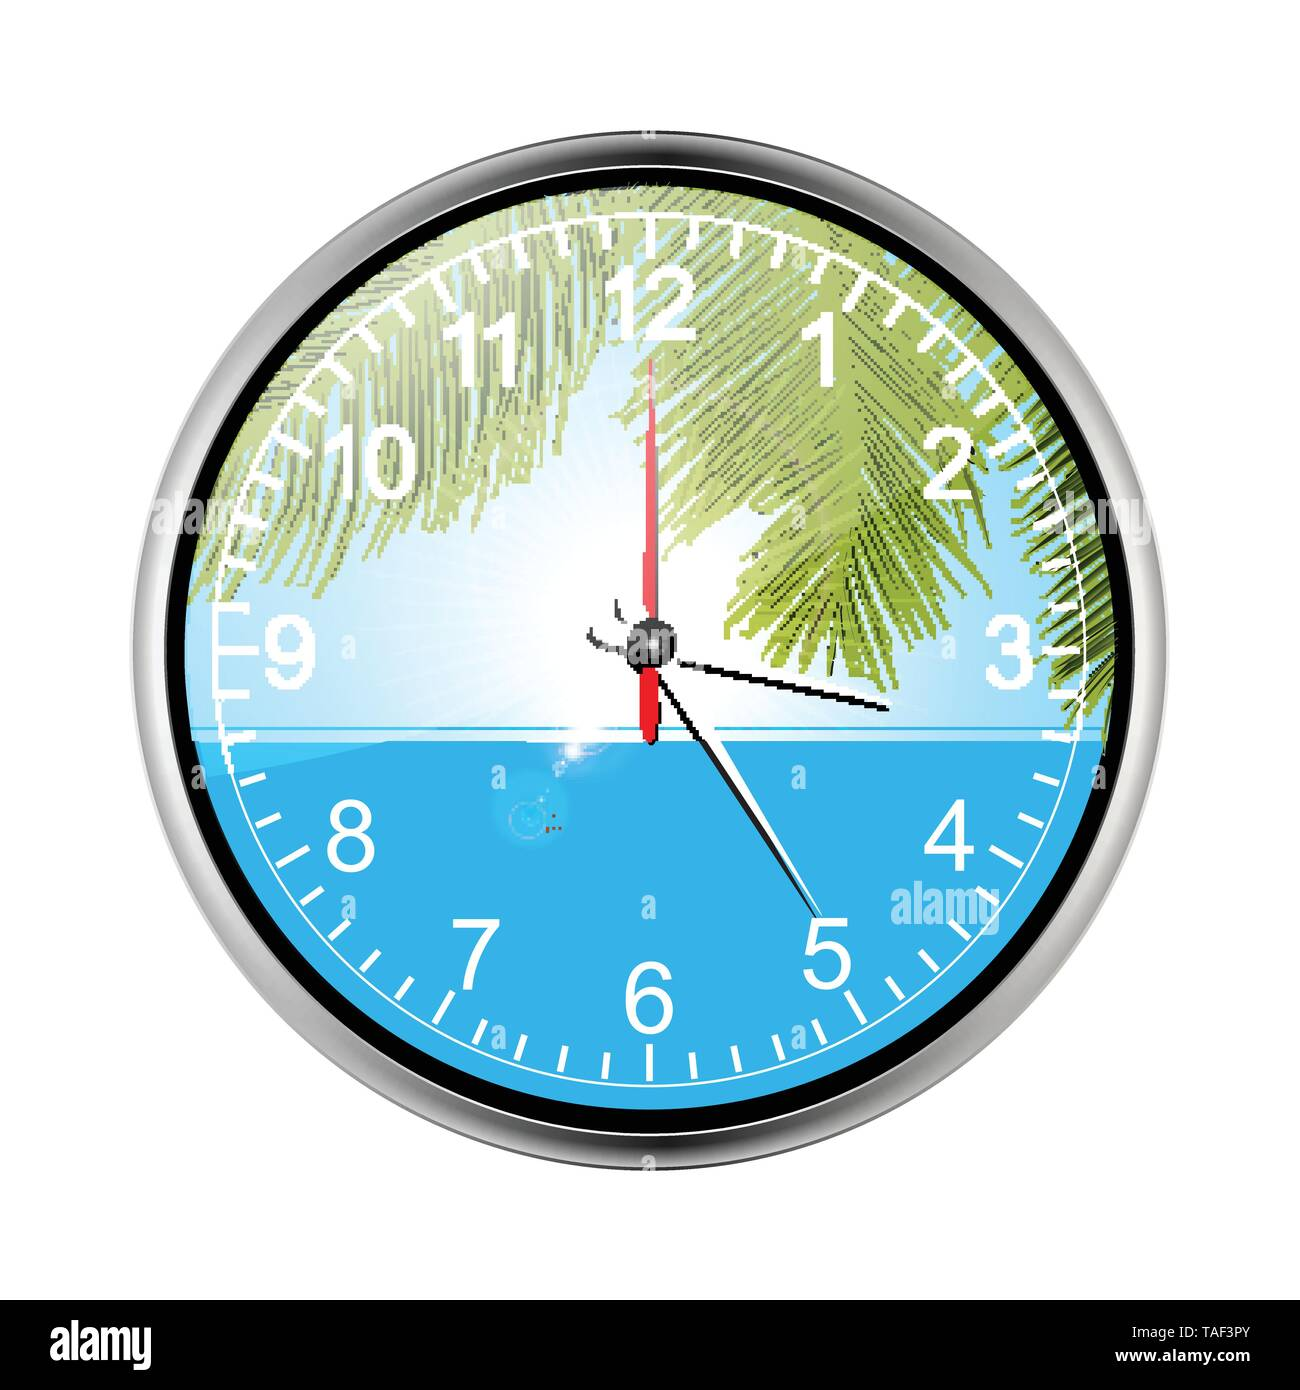 Vocational Summer Tropical Holidays Wall Clock With Palm Trees Sea and Lens Flares Over White Background - Stock Image